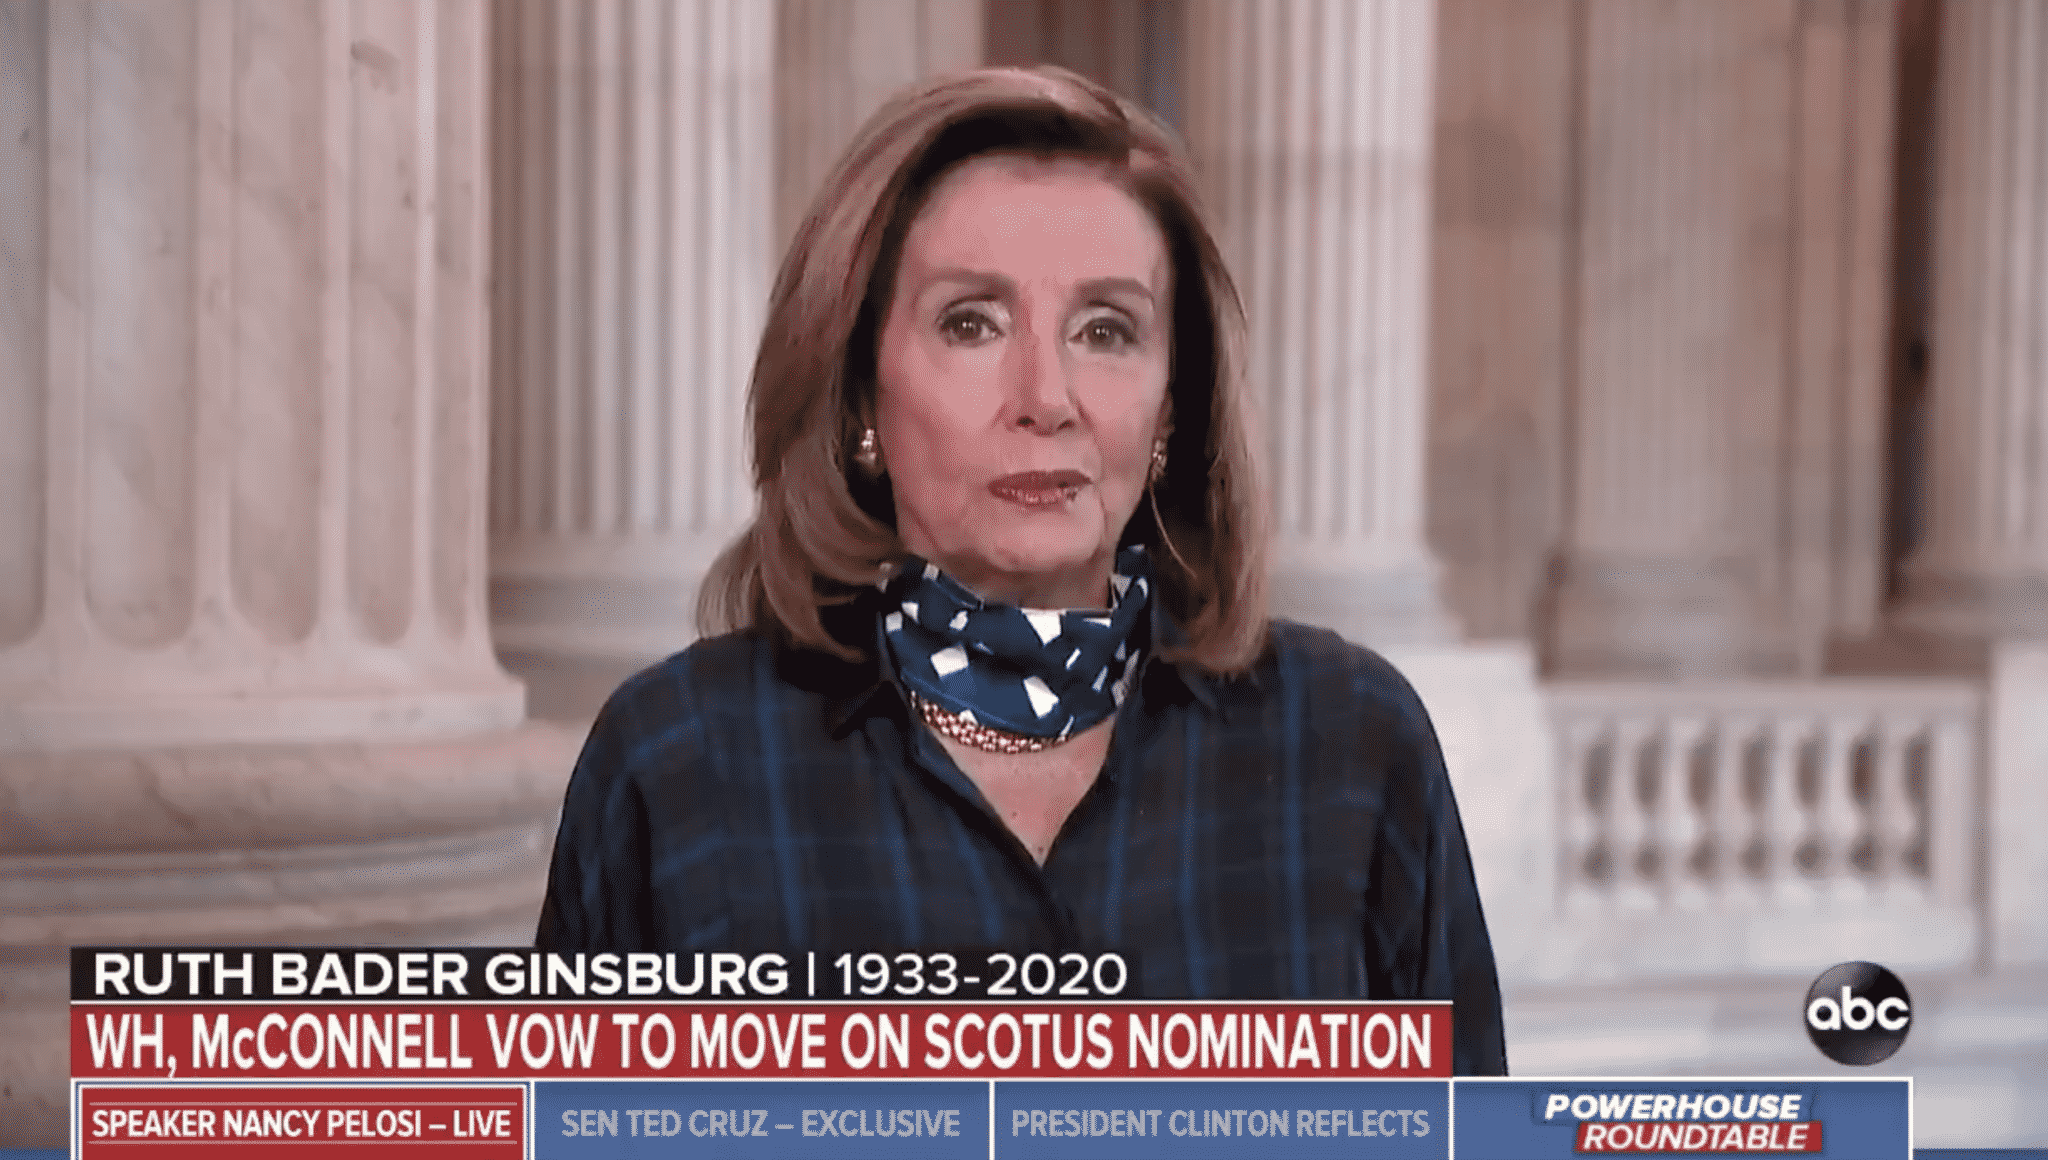 Pelosi Weighs in on Trump Supreme Court Nominee: 'We Have Arrows in Our  Quiver'